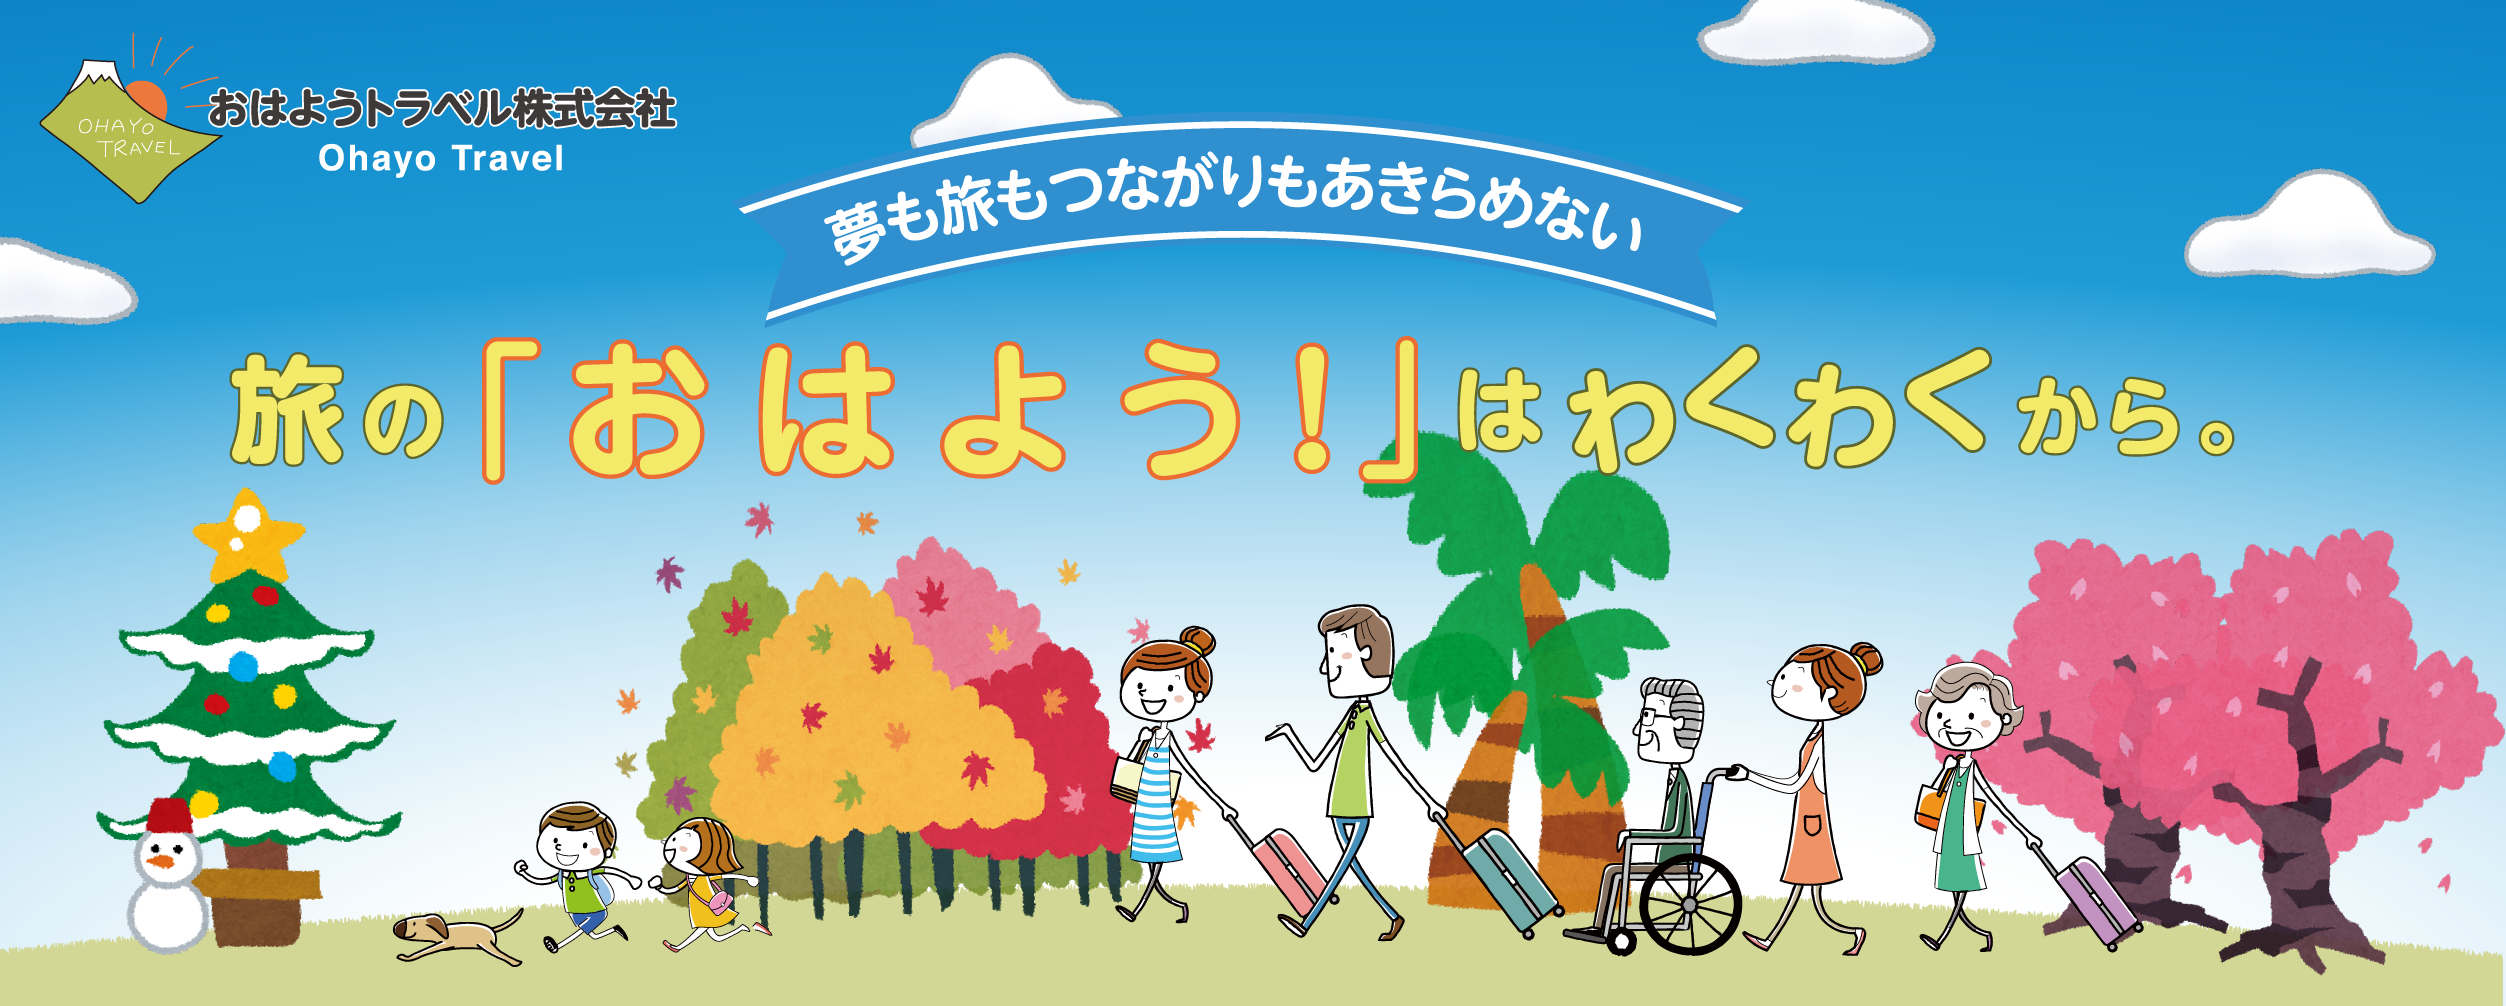 Tokyo Metropolitan Goverment Released Website for Accessible Travel